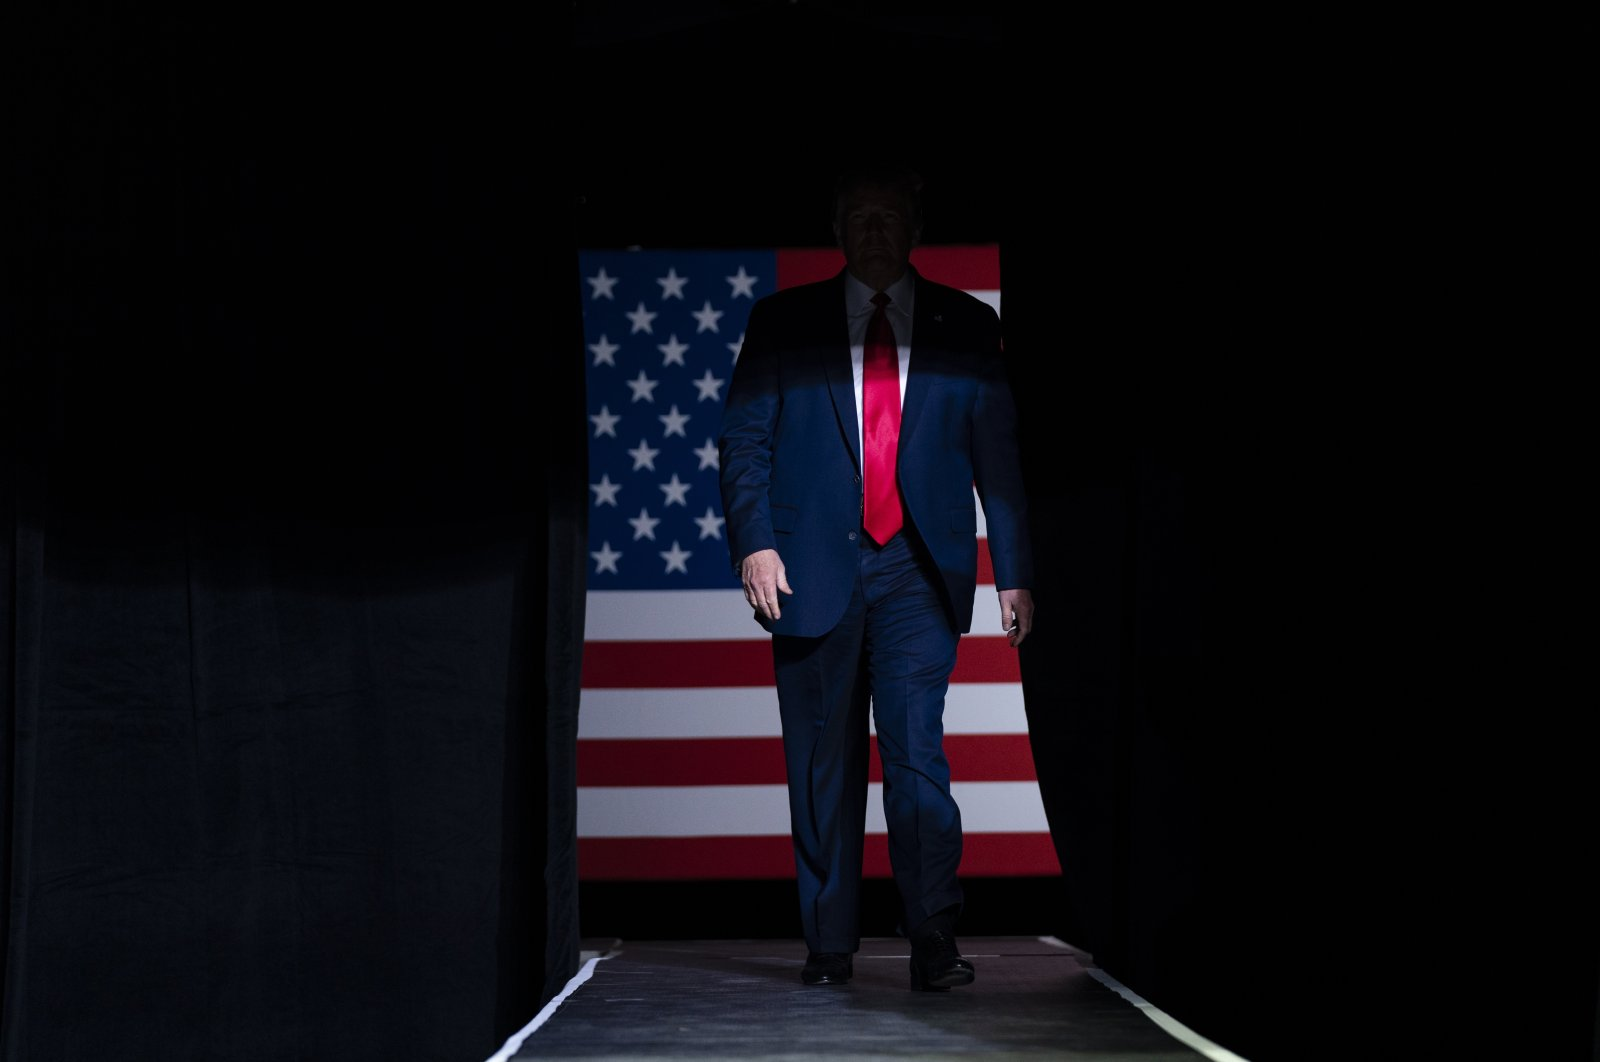 President Donald Trump arrives on stage to speak at a campaign rally at the BOK Center in Tulsa, Oklahoma, U.S., June 20, 2020. (AP Photo)